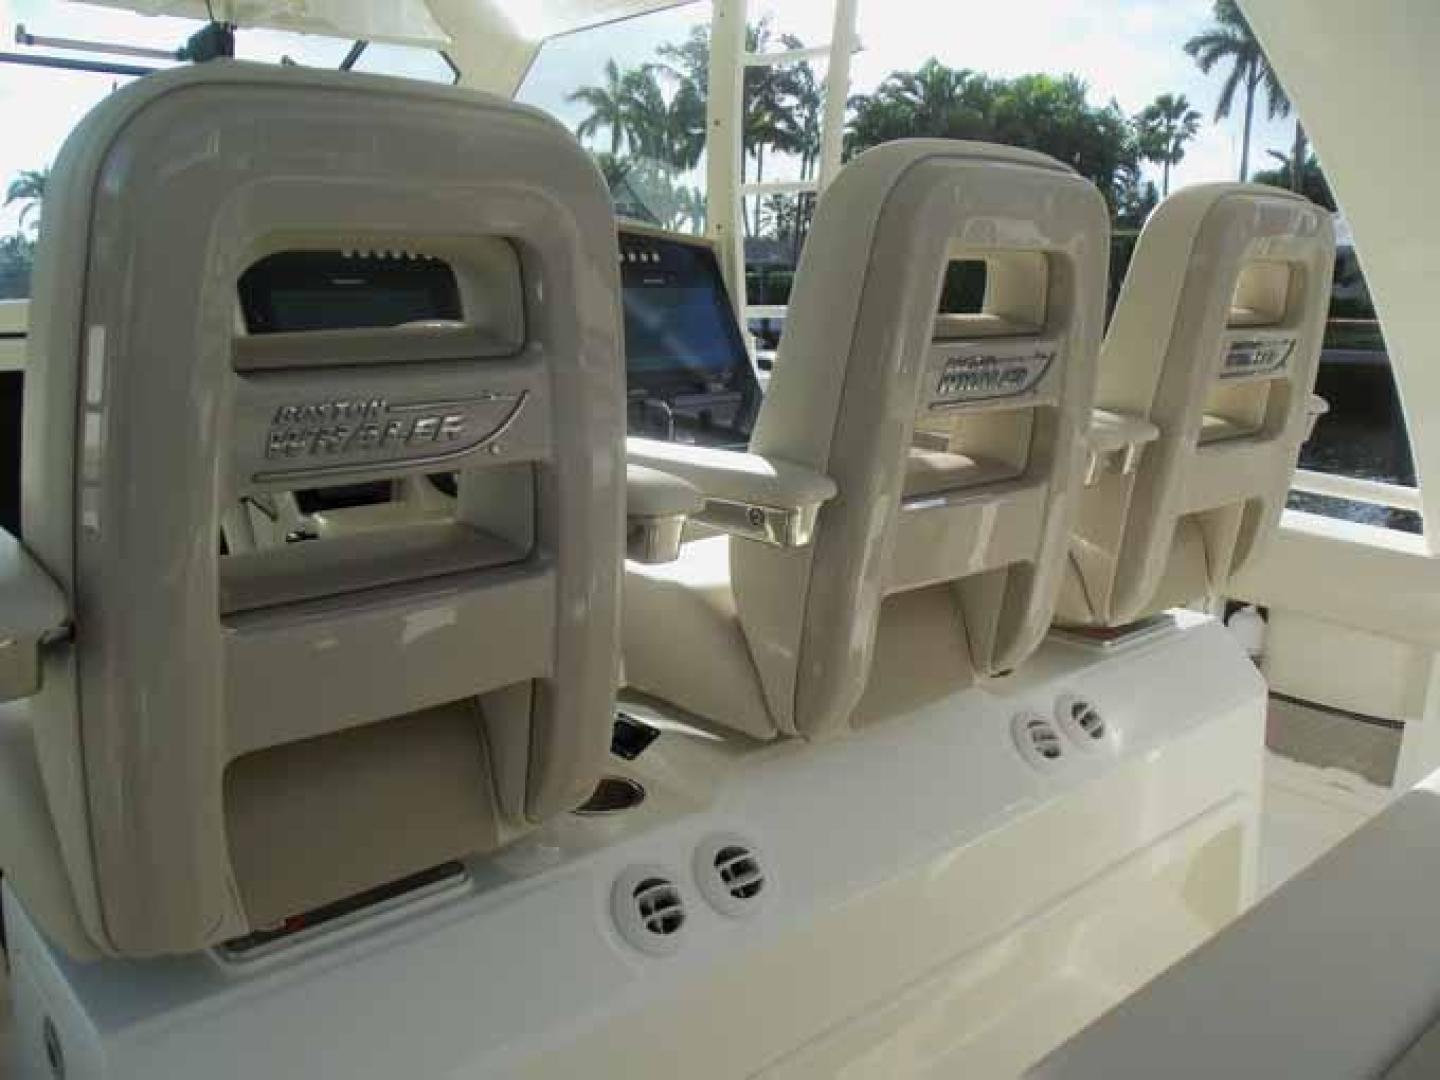 Boston Whaler-Outrage 42 2016-DEALERS CHOICE Ft. Lauderdale-Florida-United States-SEATING AC VENTS-1058272 | Thumbnail